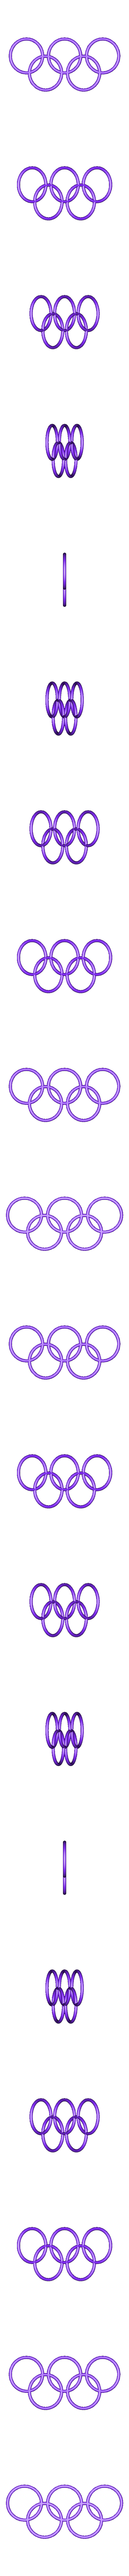 OlympicRings-3-N.stl Download free STL file Olympic Rings - Wall Plaque • 3D printing object, djgeenen